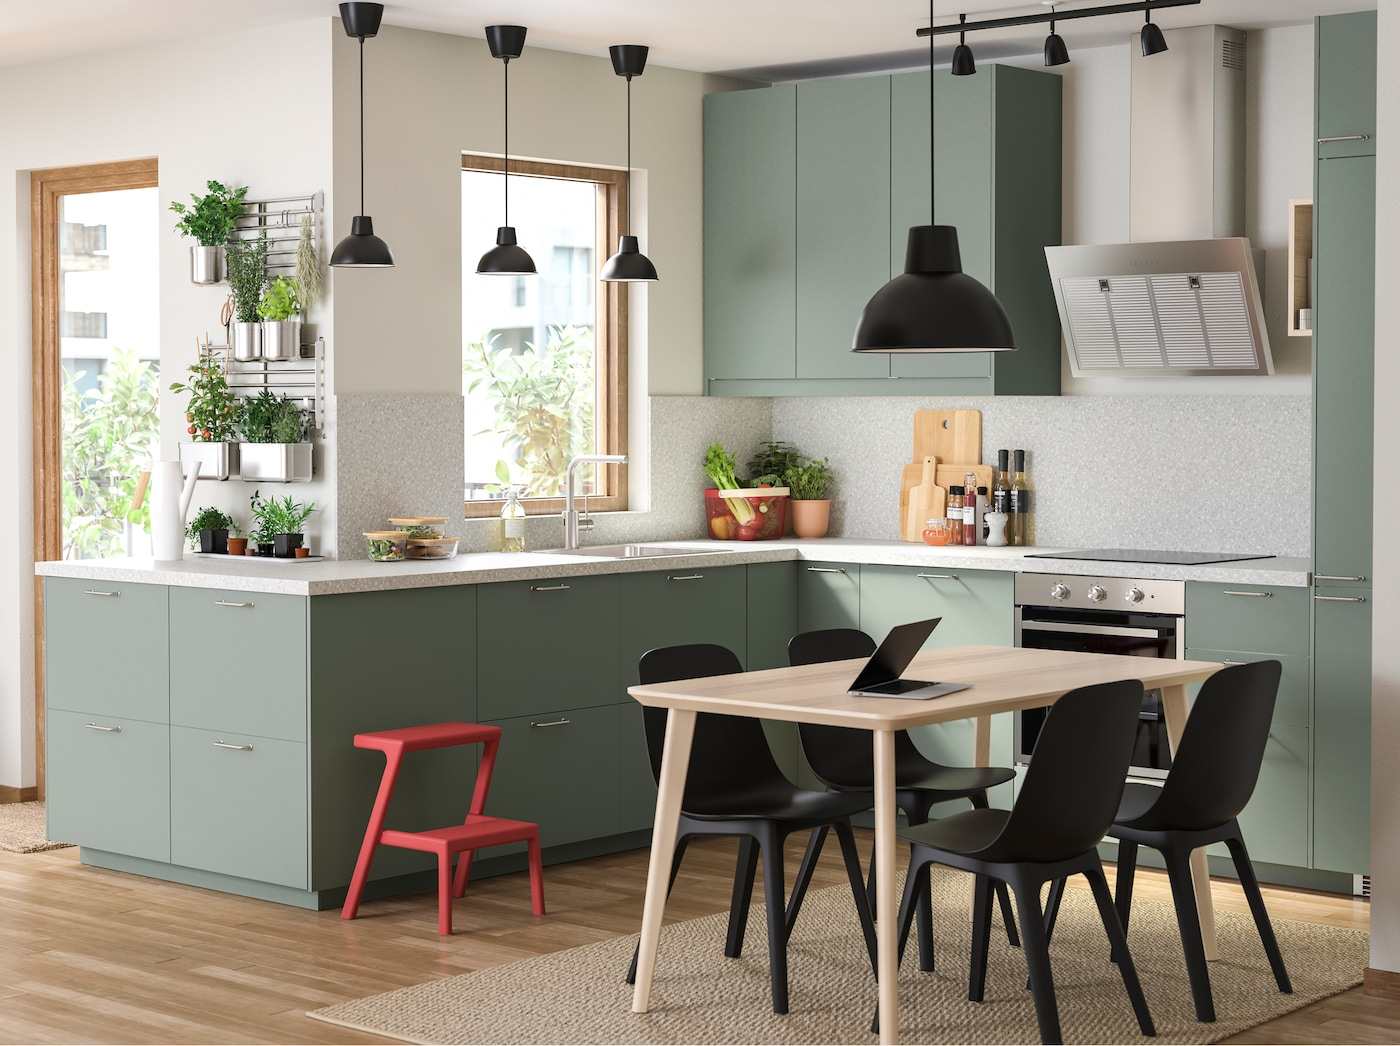 Kitchen gallery - IKEA